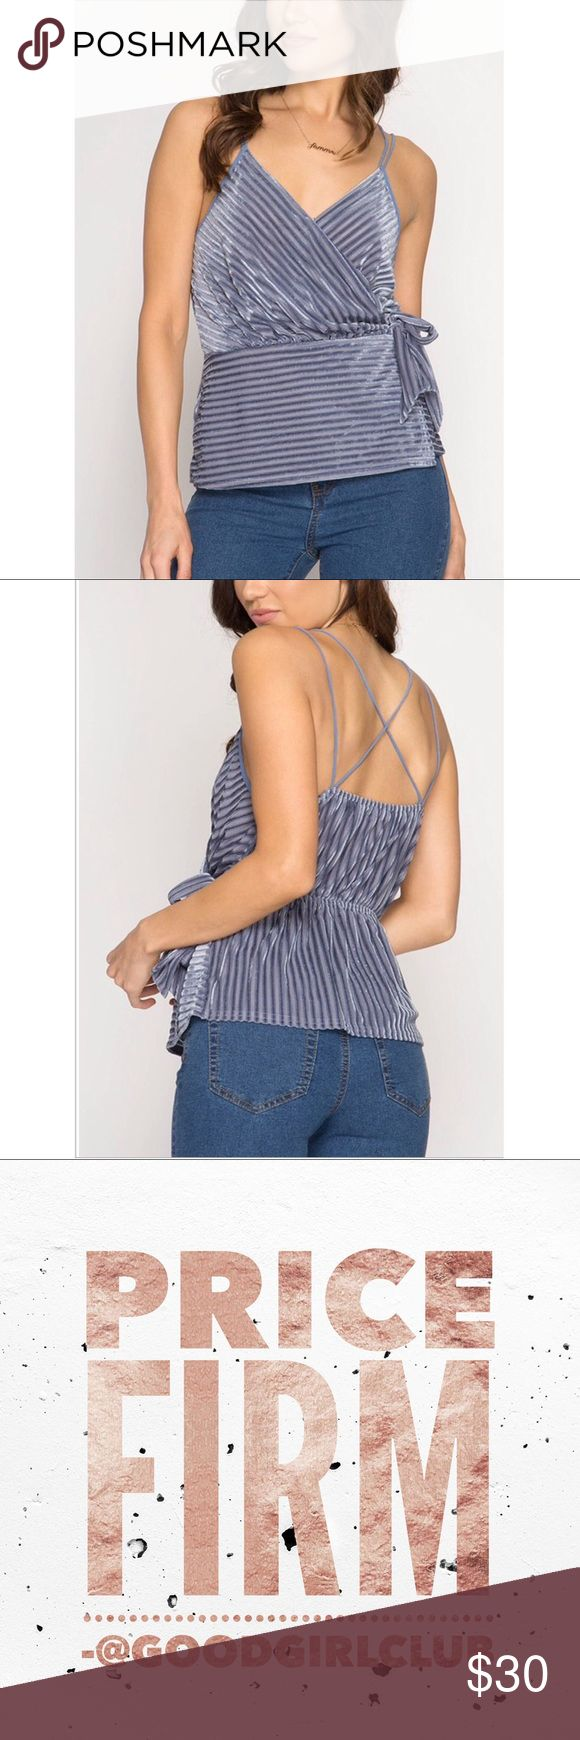 BURN OUT VELVET STRIPED CAMI TOP WITH SIDE TIE BURN OUT VELVET STRIPED CAMI TOP WITH SIDE TIE   S:65%COTTON 35%RAYON  KNIT TOP IMPORTED  ❌PRICE FIRM❌ ❌NO TRADES❌  ⚜️INSTAGRAM: @SHOP_GOODGIRLCLUB ⚜️TWITTER: @_GOODGIRLCLUB Tops